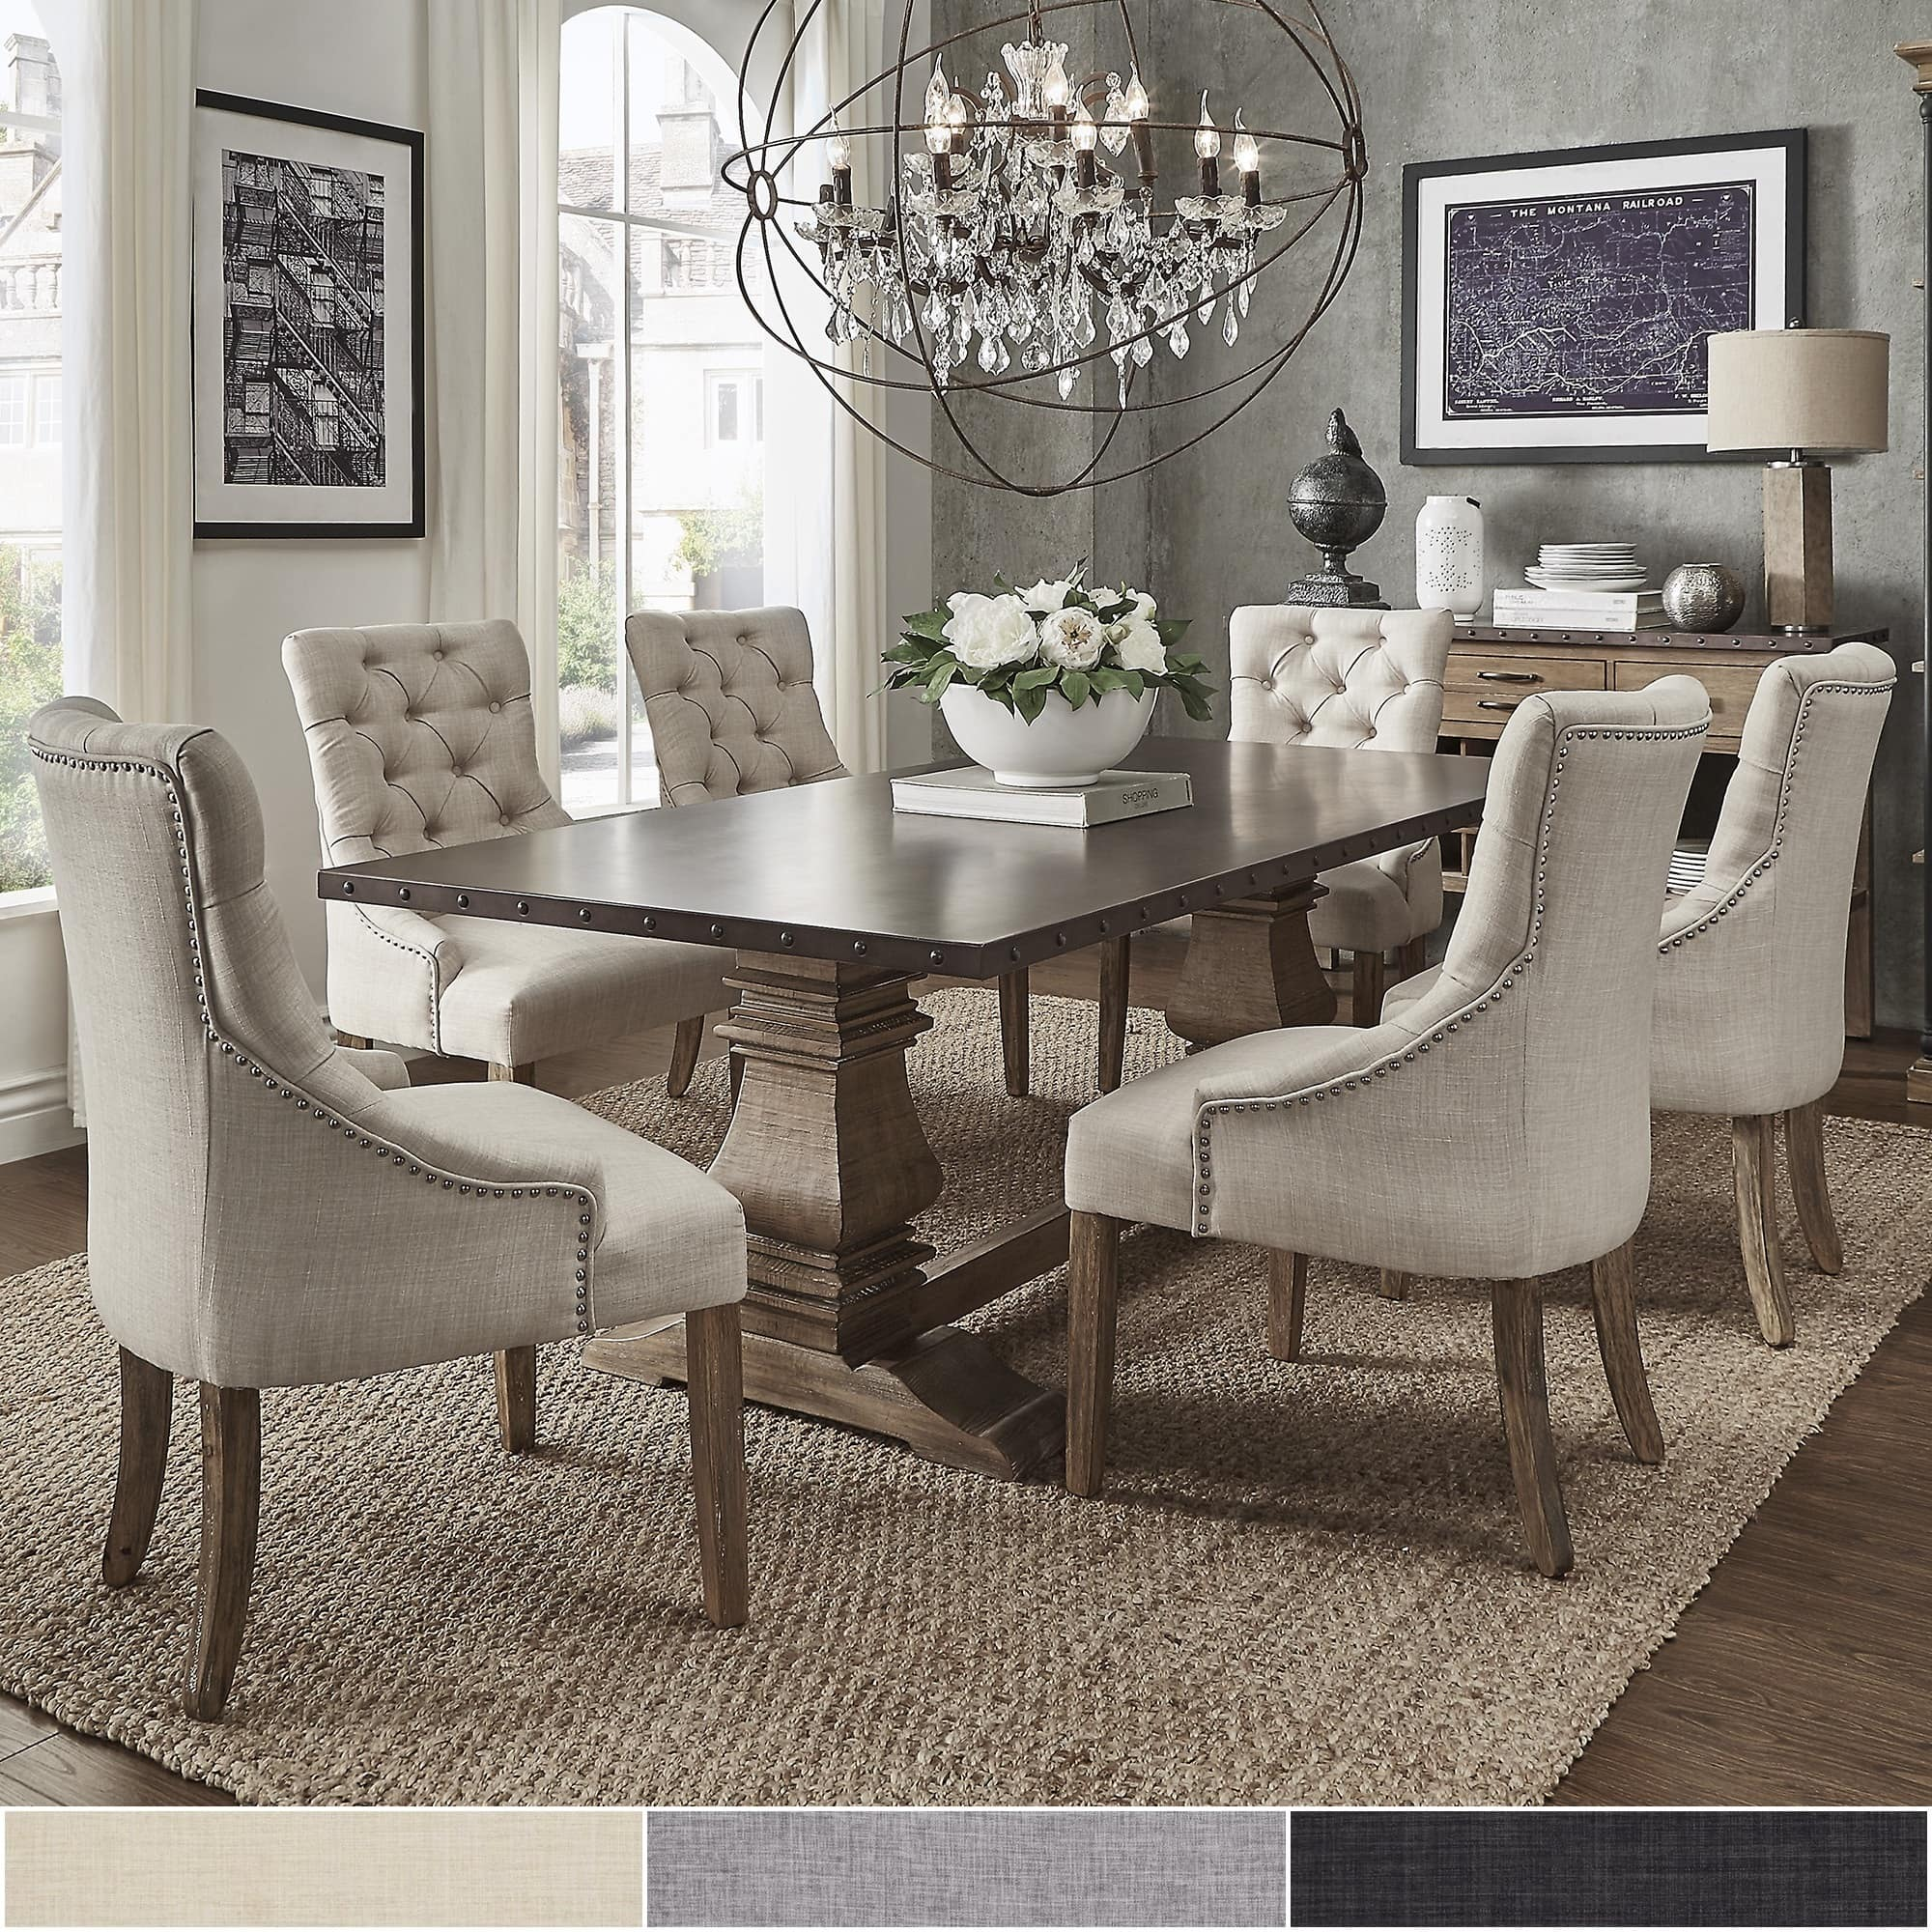 Buy Dining Room Furniture Online: Buy Kitchen & Dining Room Sets Online At Overstock